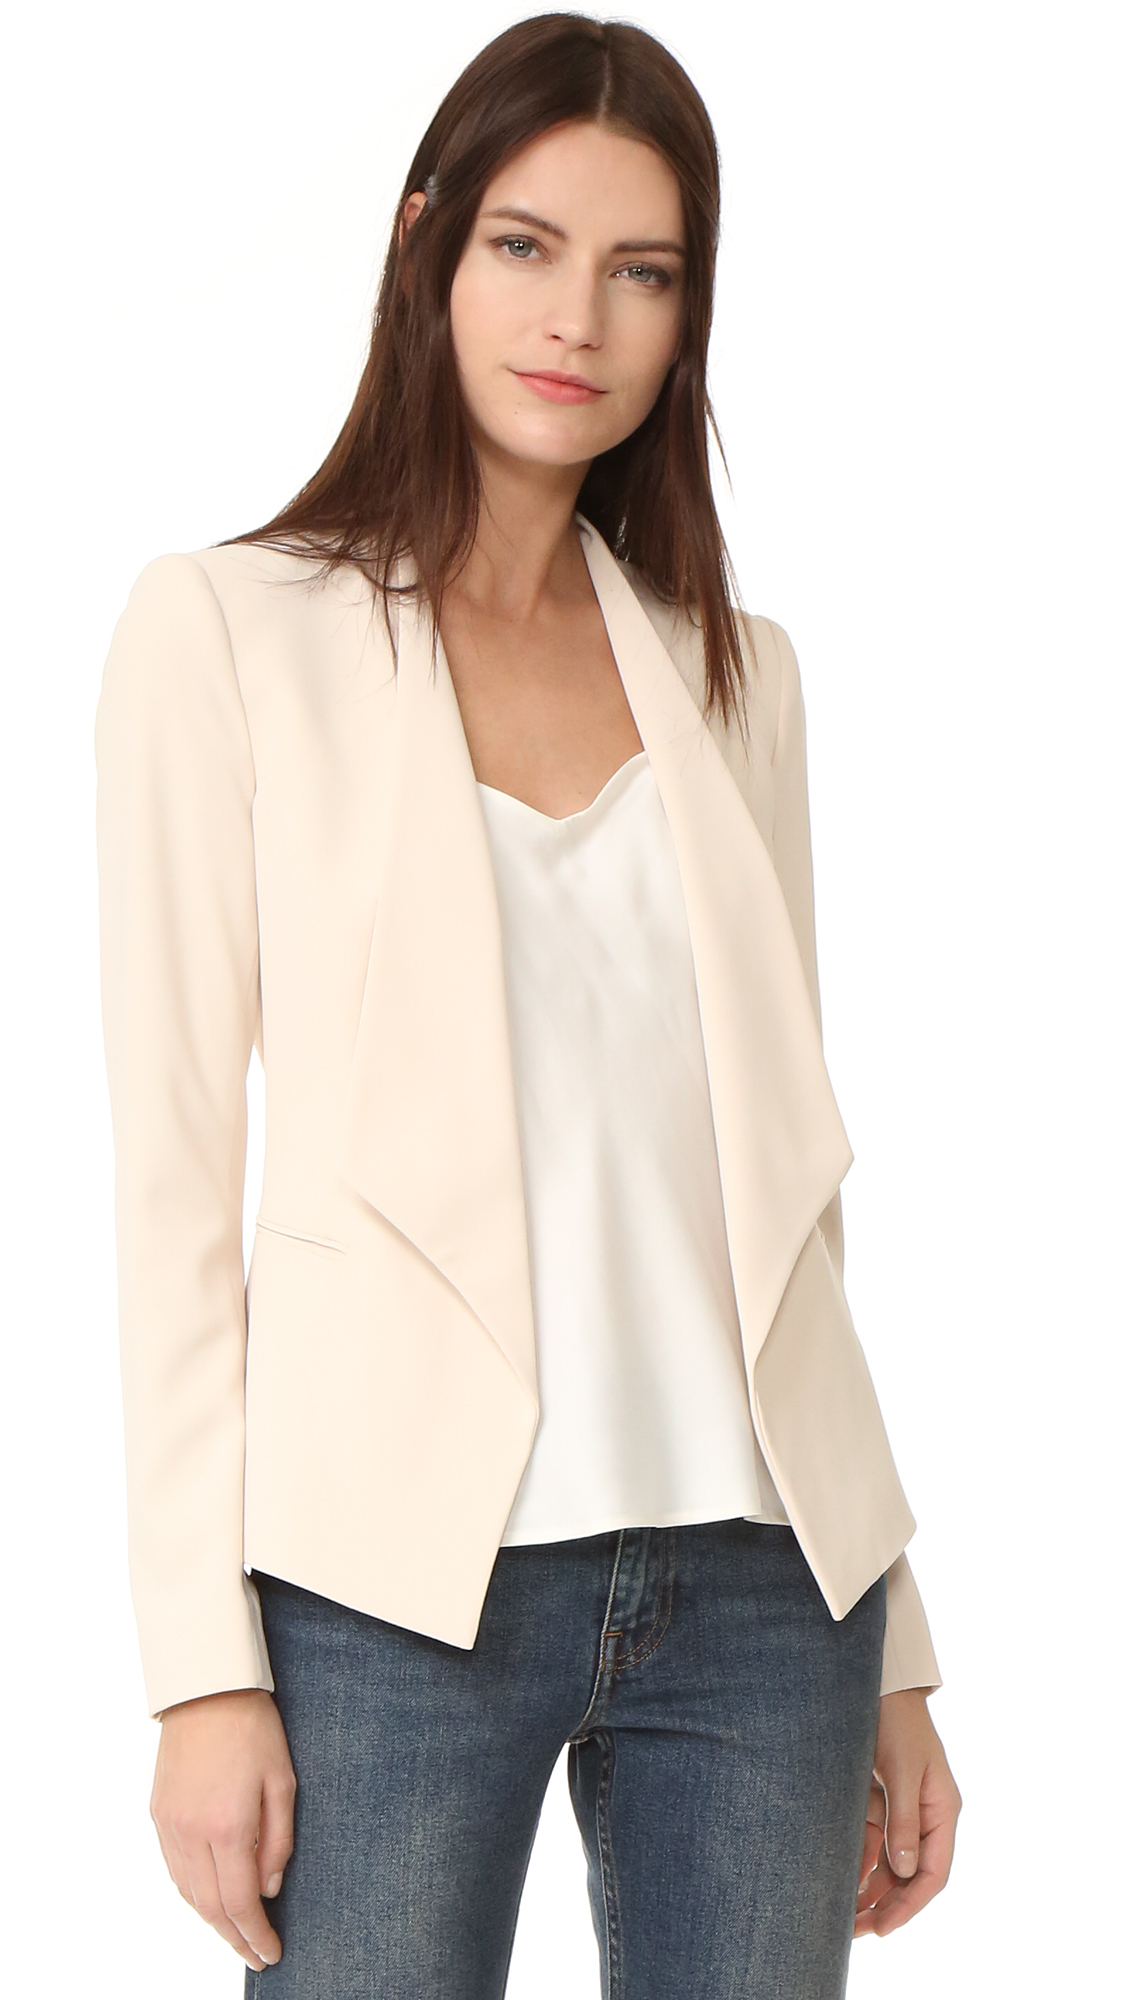 Alice + Olivia Francisca Draped Collar Blazer - Champagne at Shopbop